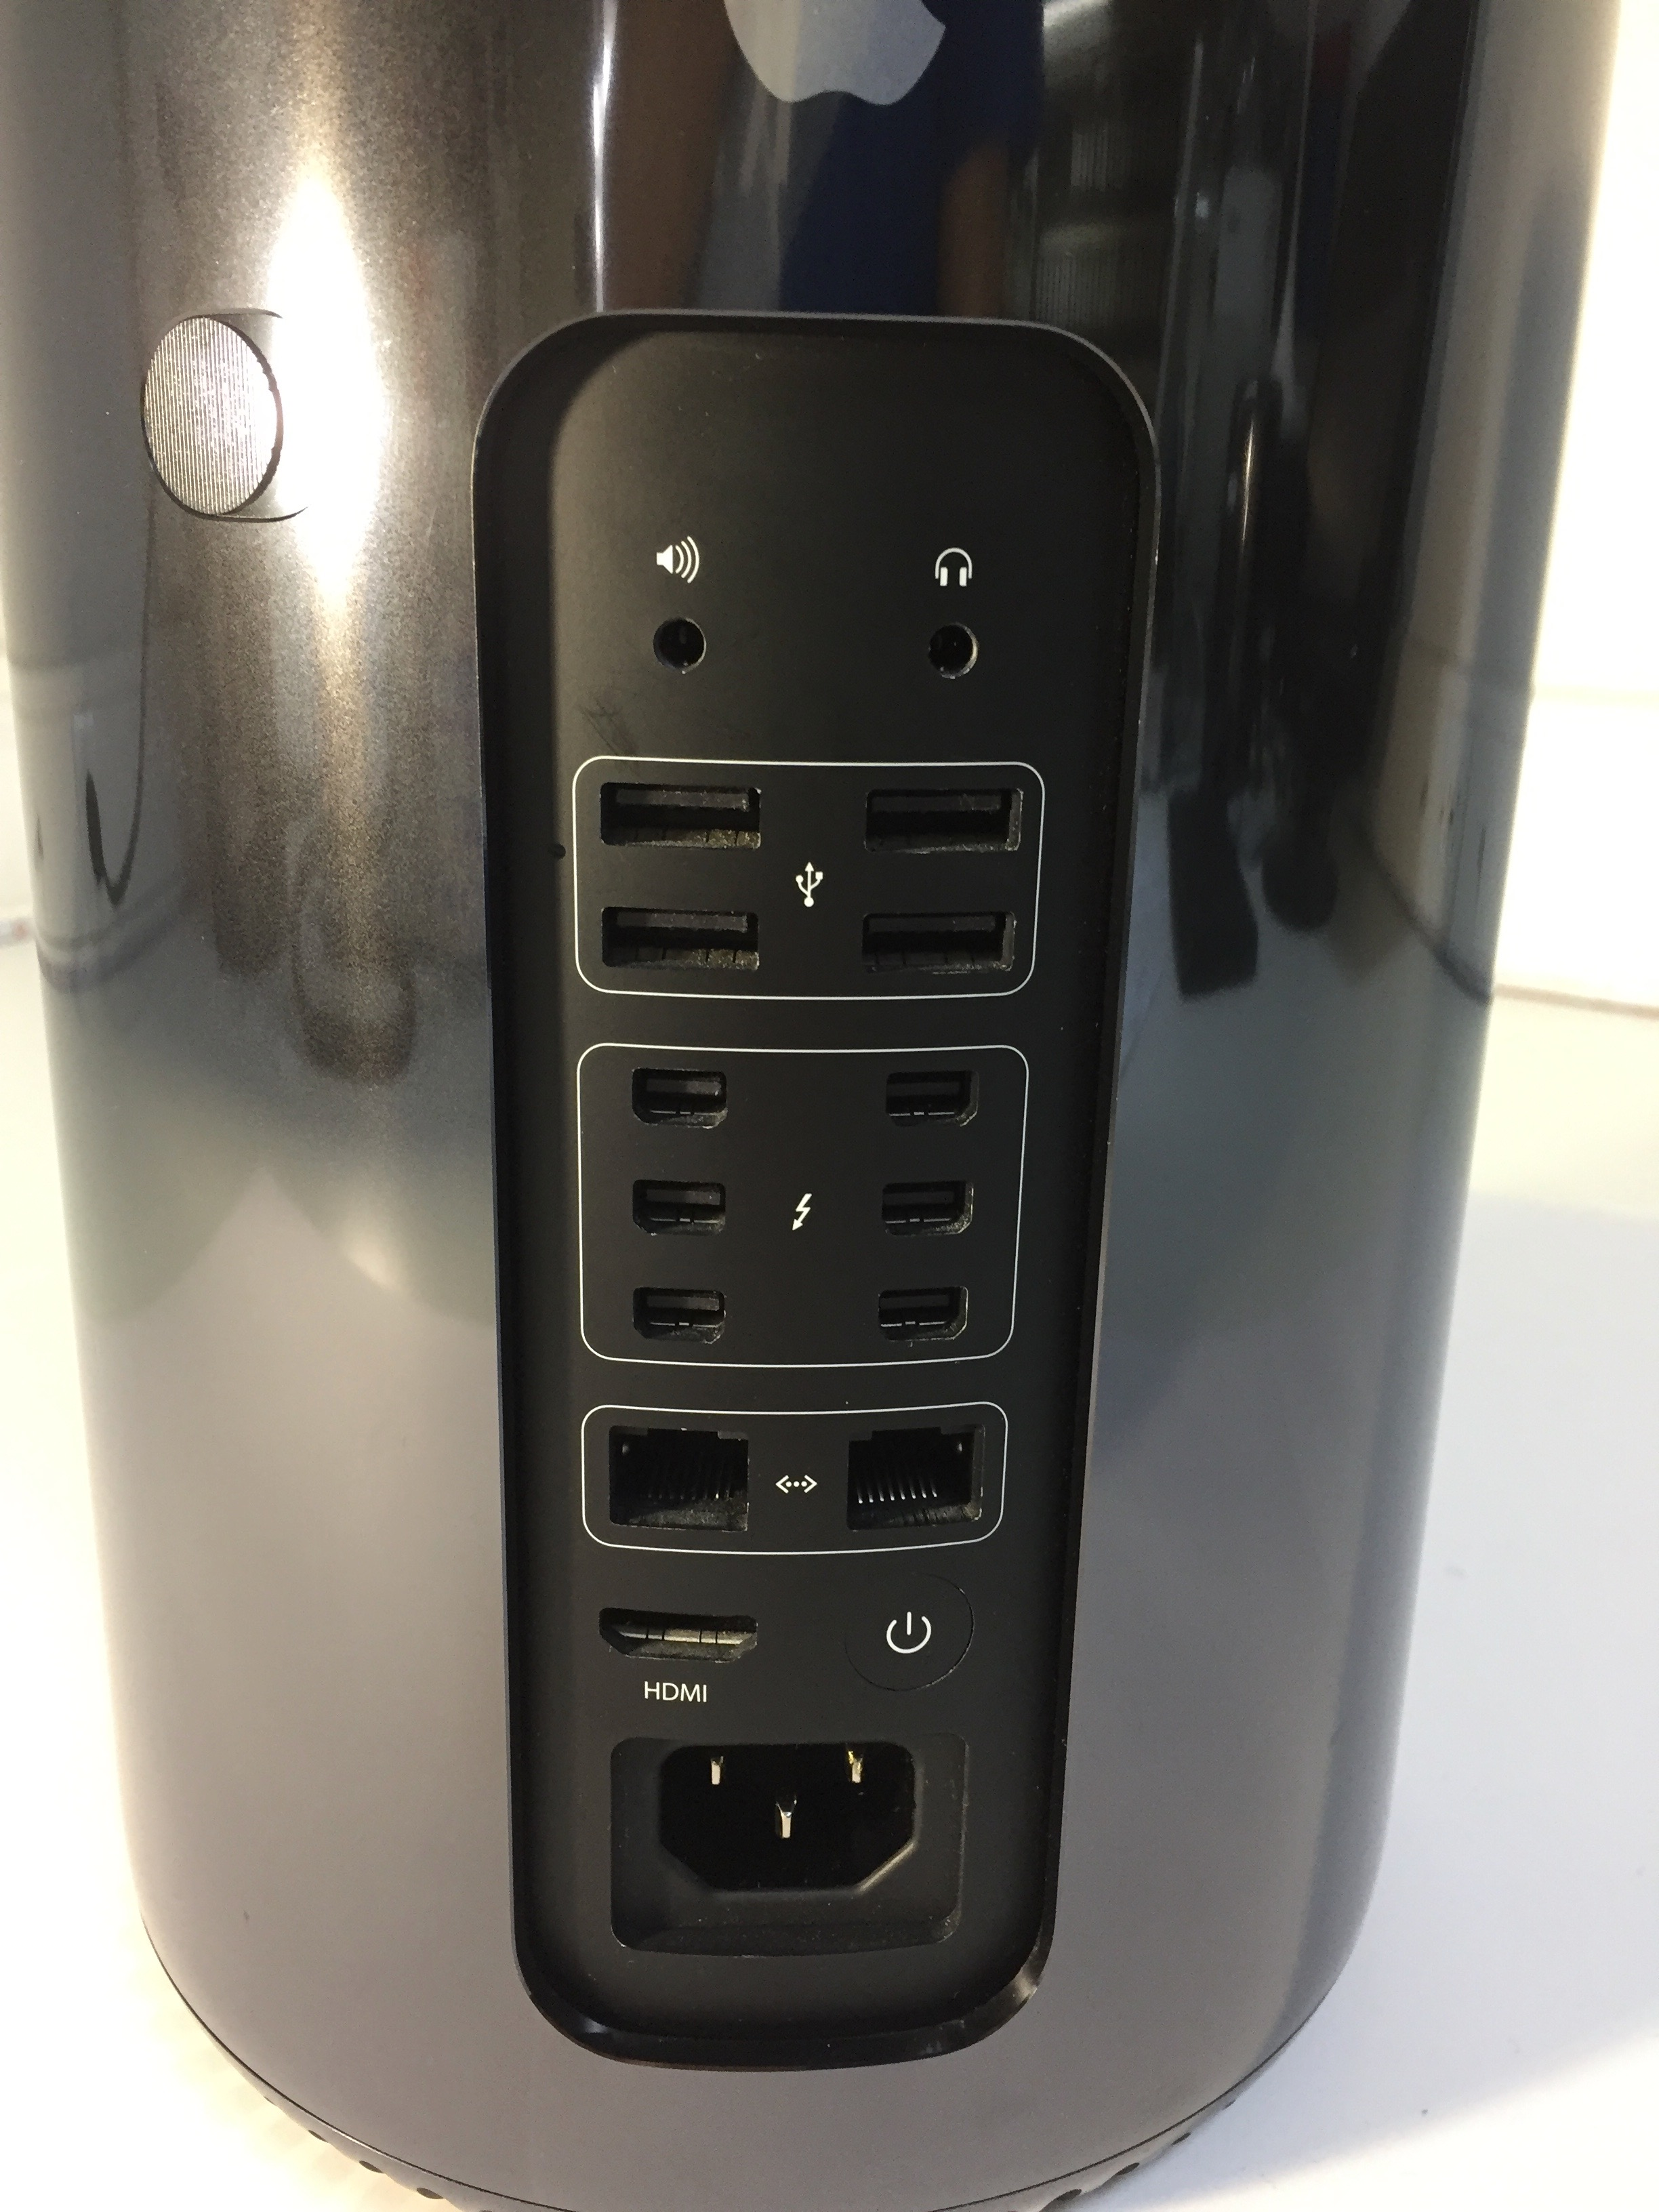 Mac Pro Late 2013 (Intel Quad-Core Xeon 3.7 GHz 32 GB RAM 1 TB SSD), 3.7 GHz Quad Core Intel Xeon E5, 32 GB , 1TB Flash, Bild 2